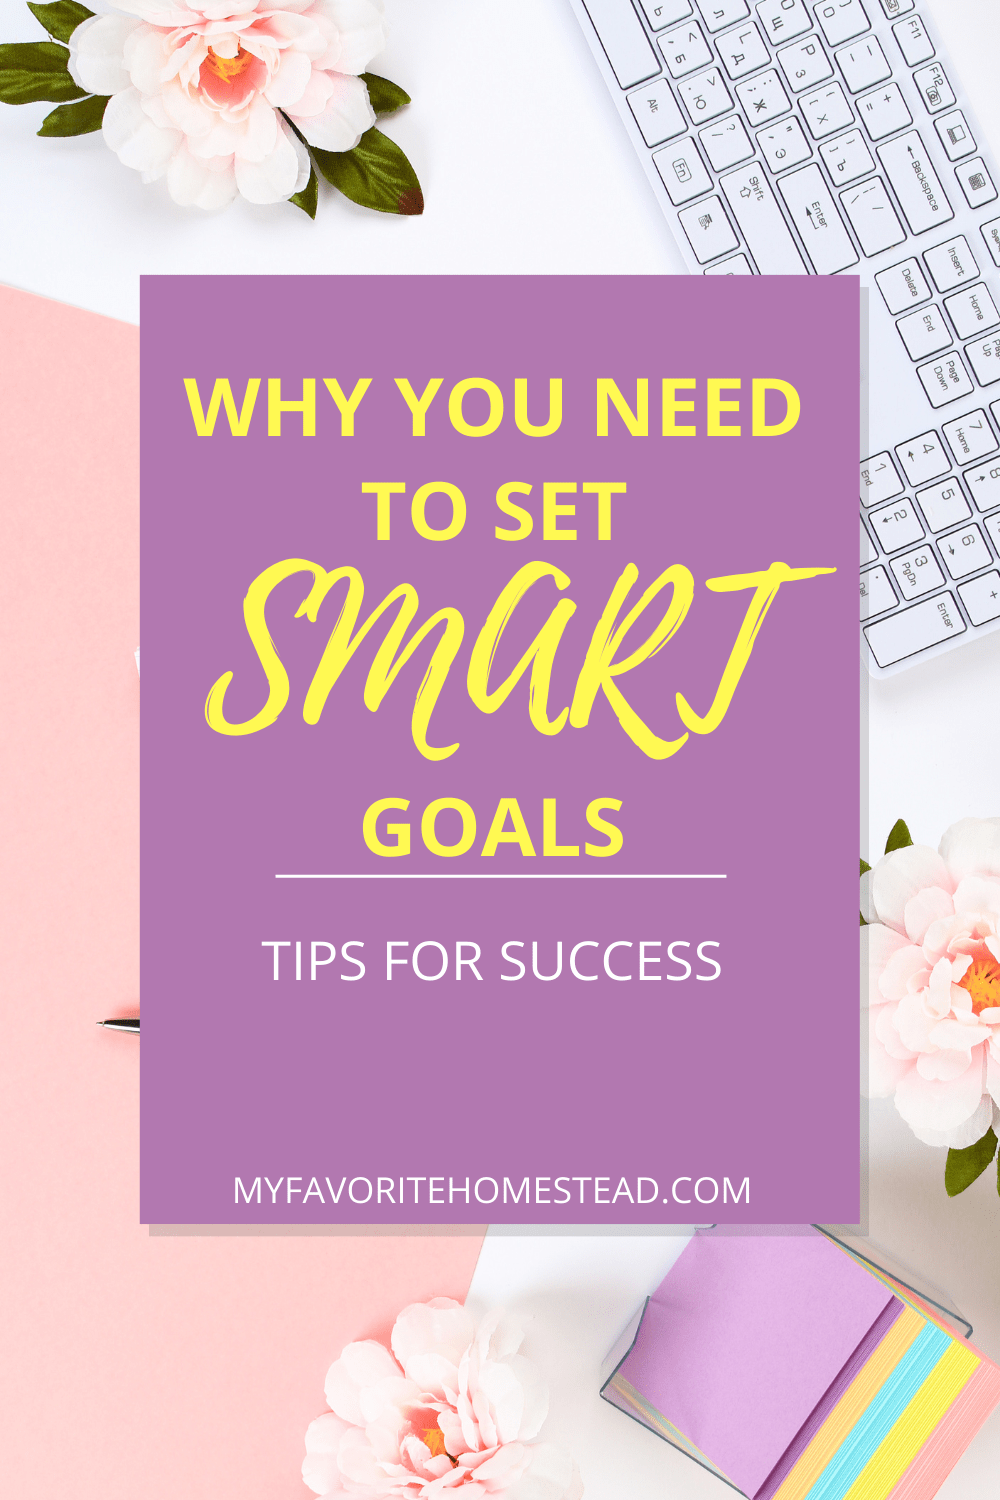 Why you need to set SMART goals